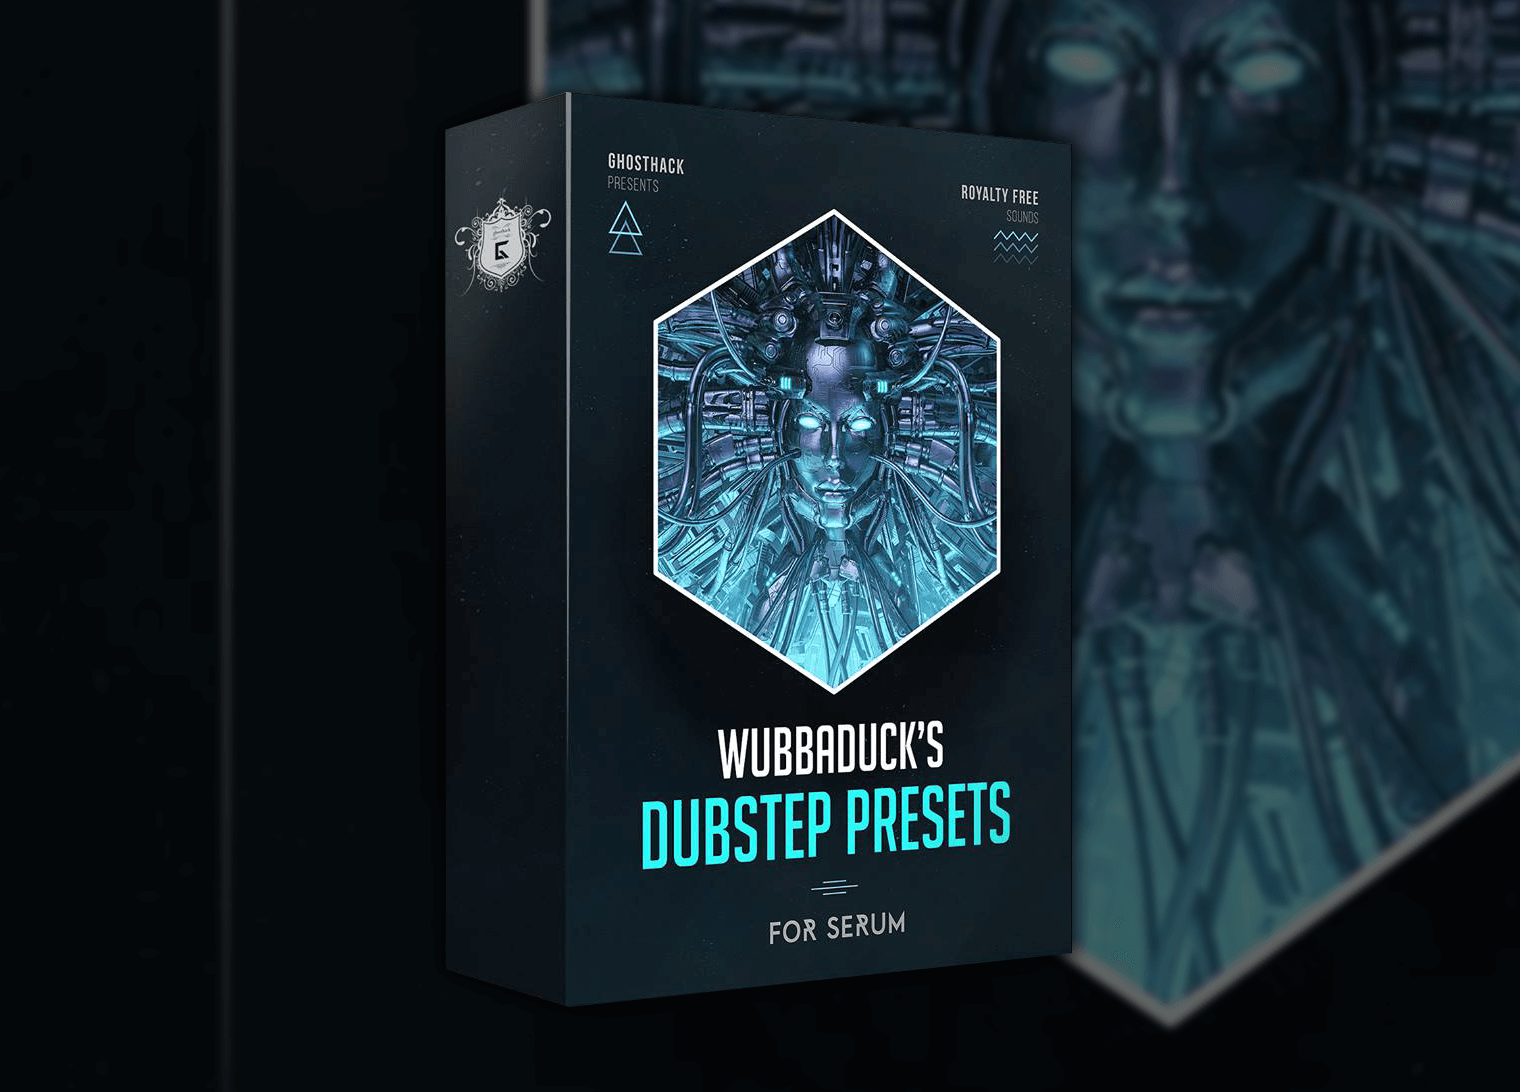 Ghosthack launches Wubbaduck's Dubstep Presets for Serum